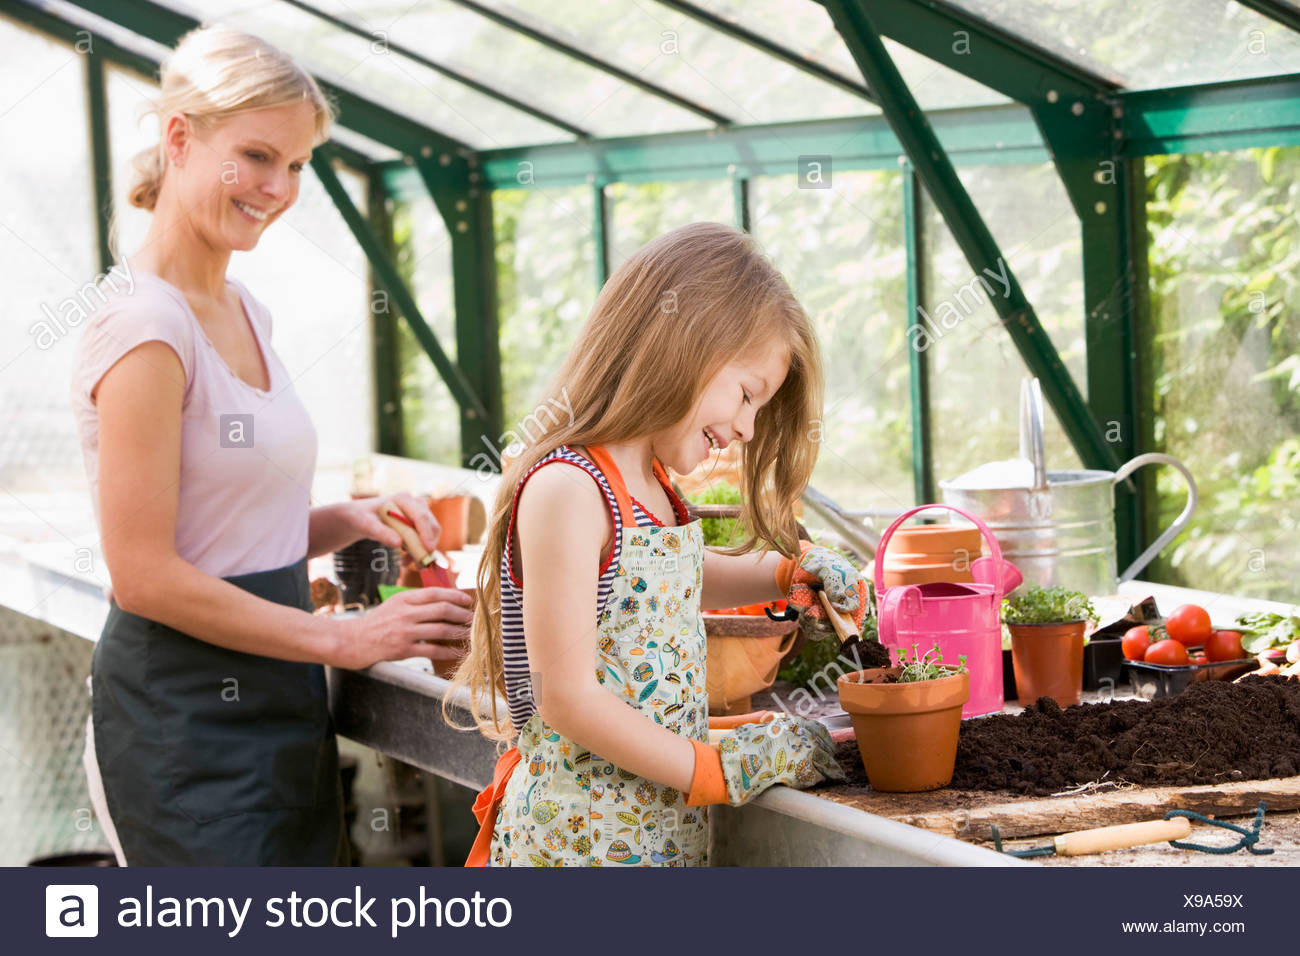 Young girl and woman in greenhouse putting soil in pots smiling Stock Photo